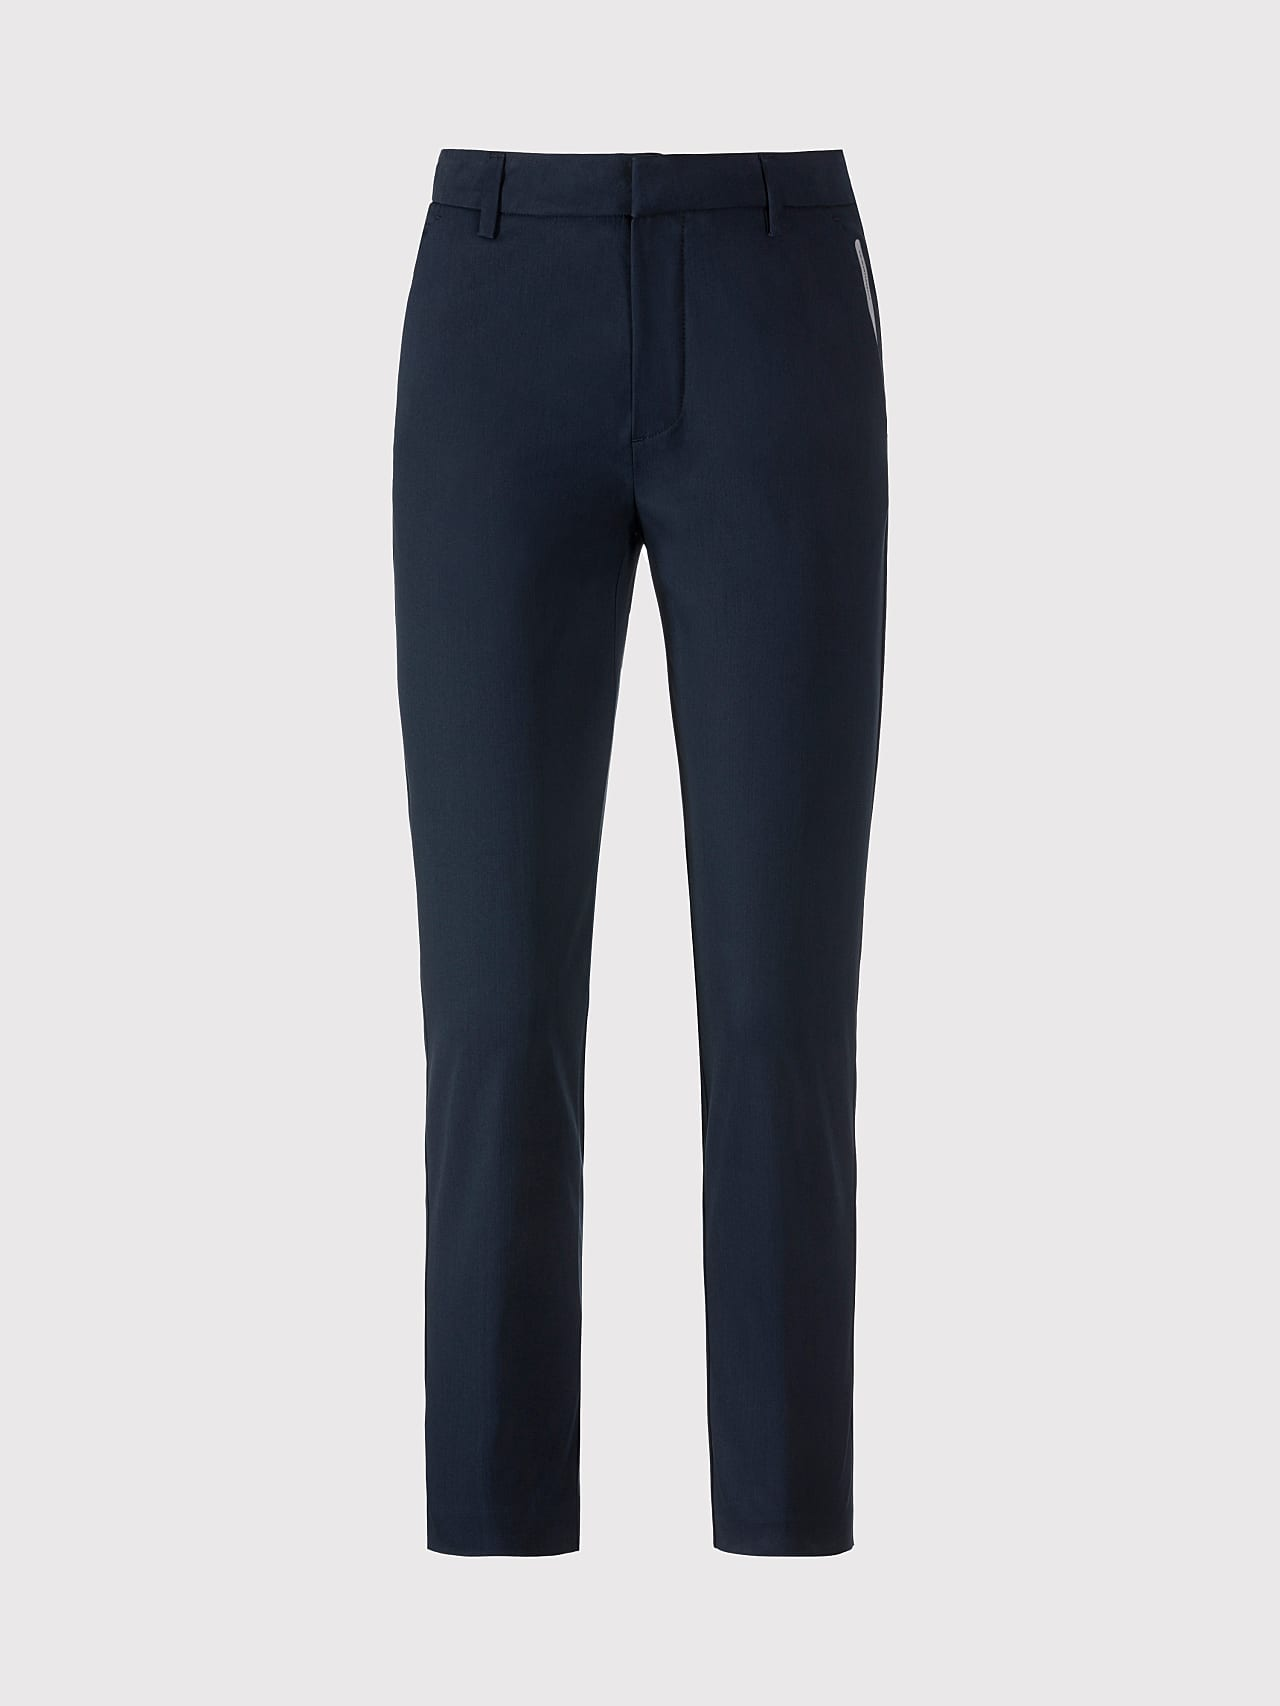 PEPPI V1.Y5.01 Water-Repellent Cotton-Twill Chino navy Back Alpha Tauri